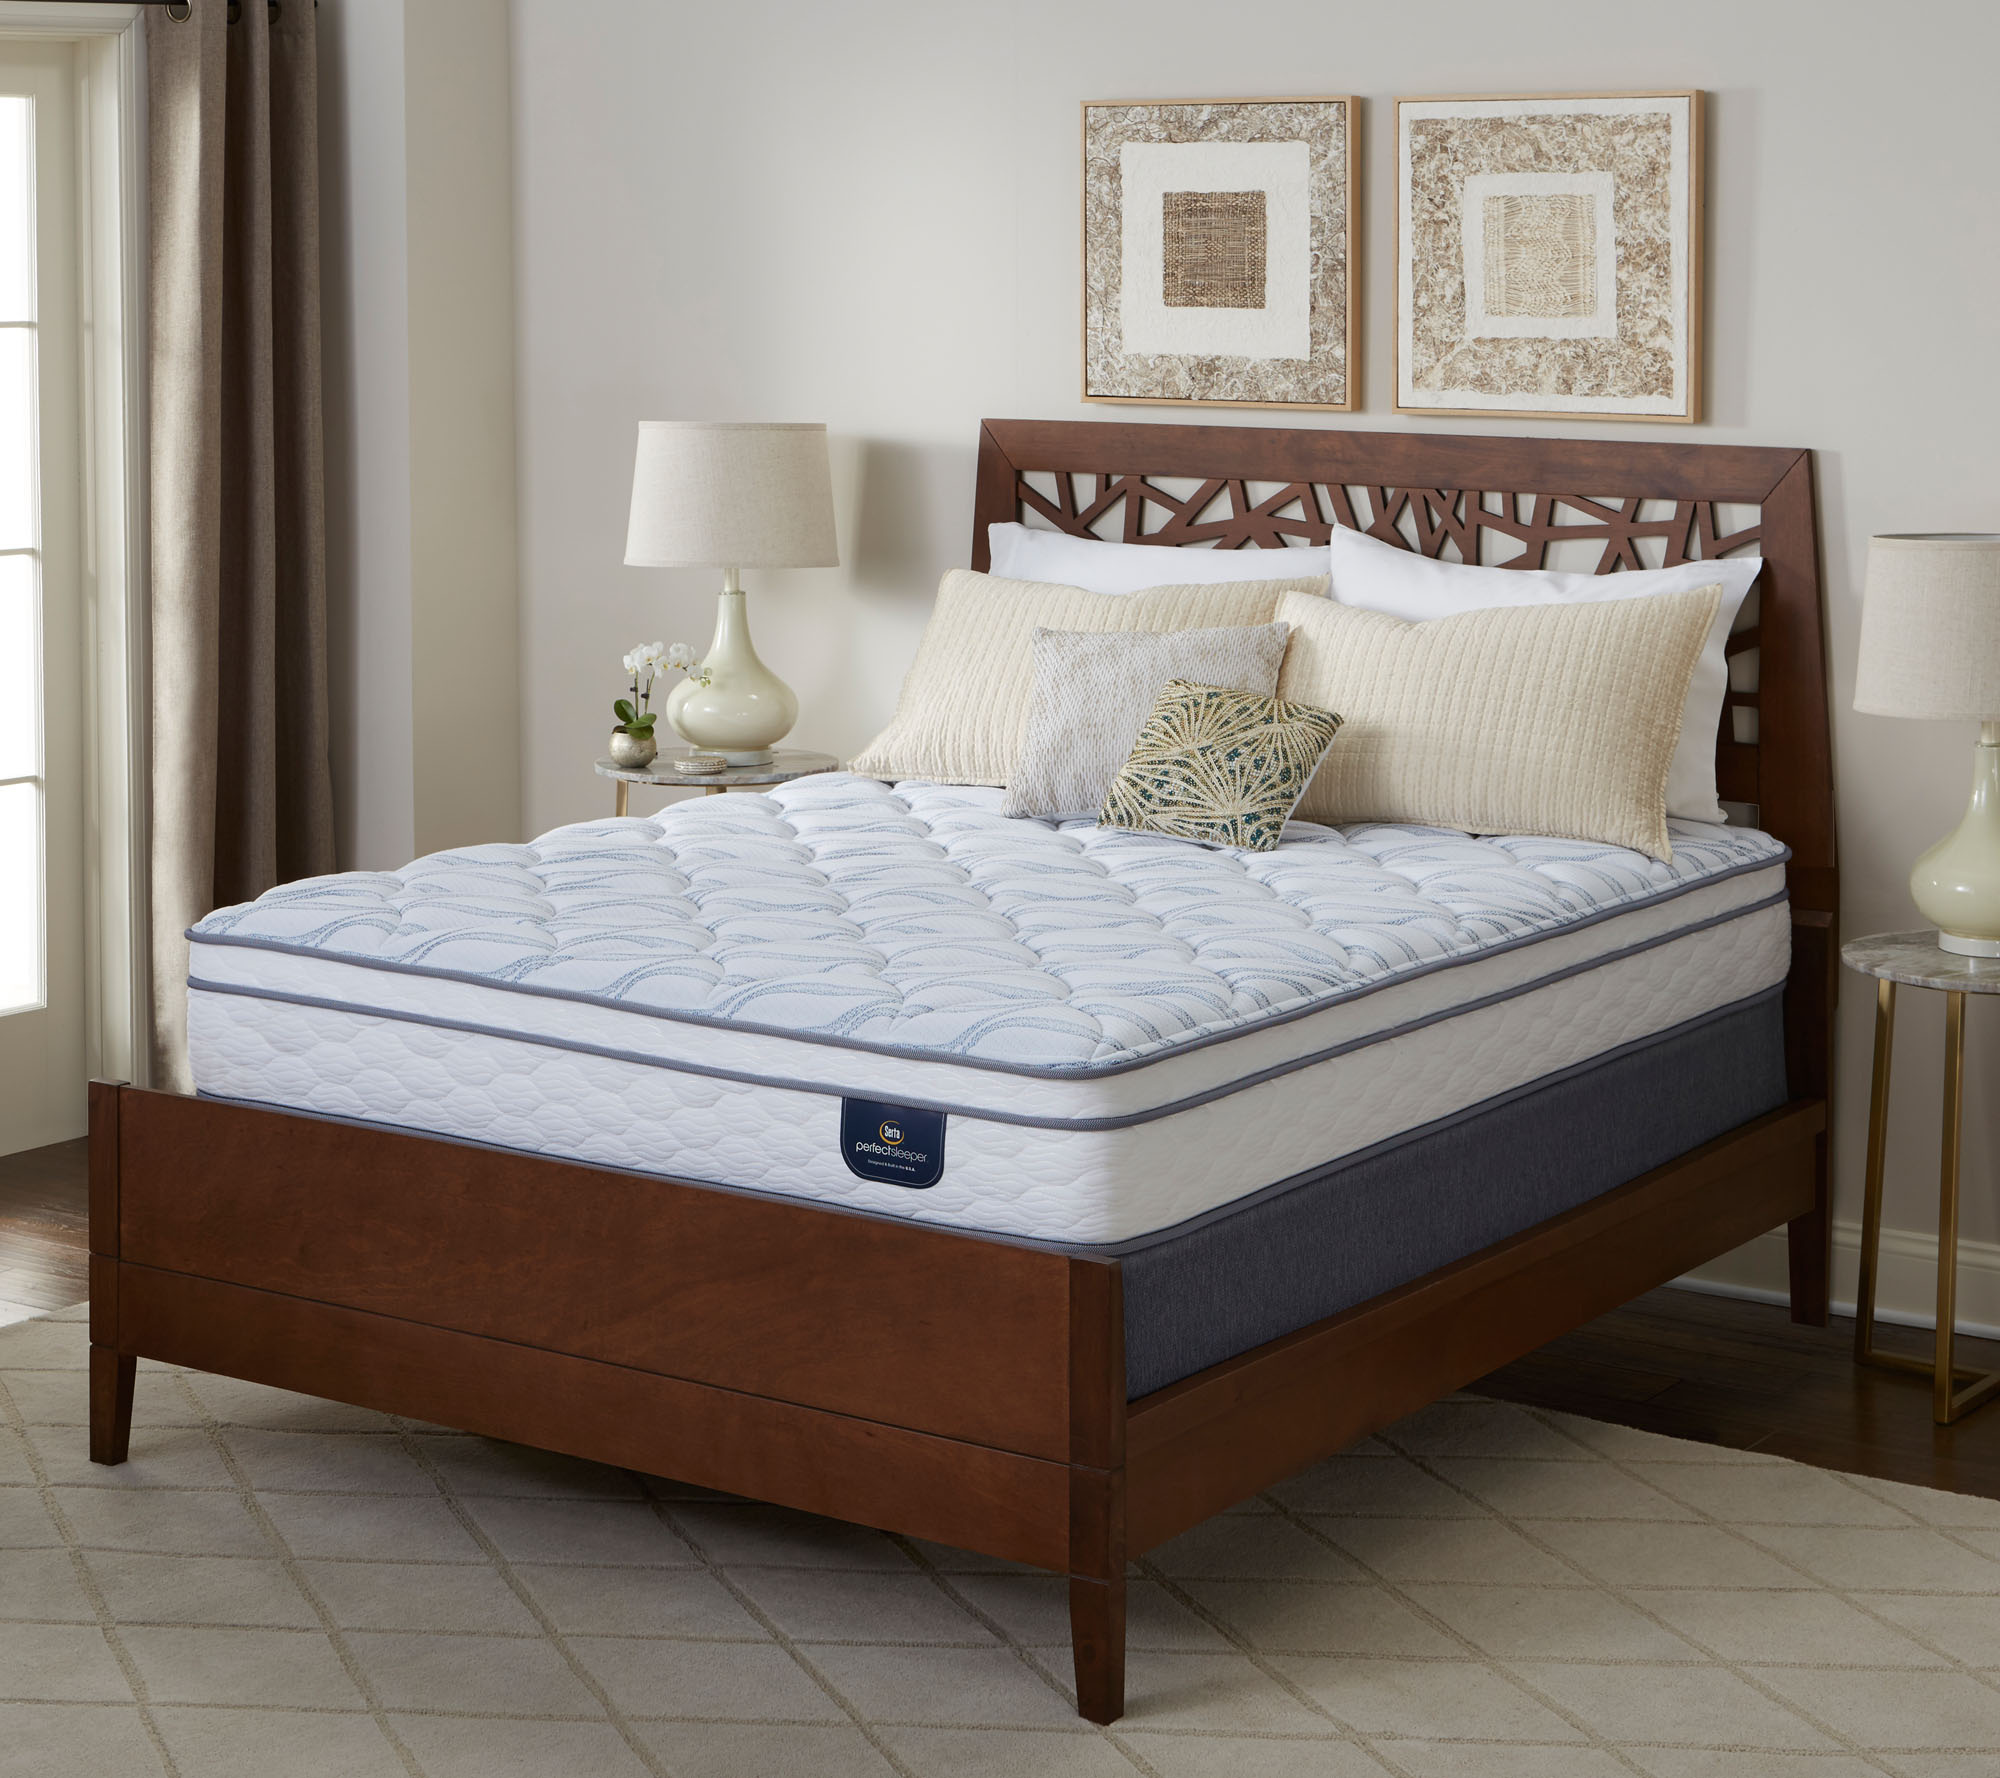 Serta Perfect Sleeper Carmine Euro Top King Mattress Set Page 1